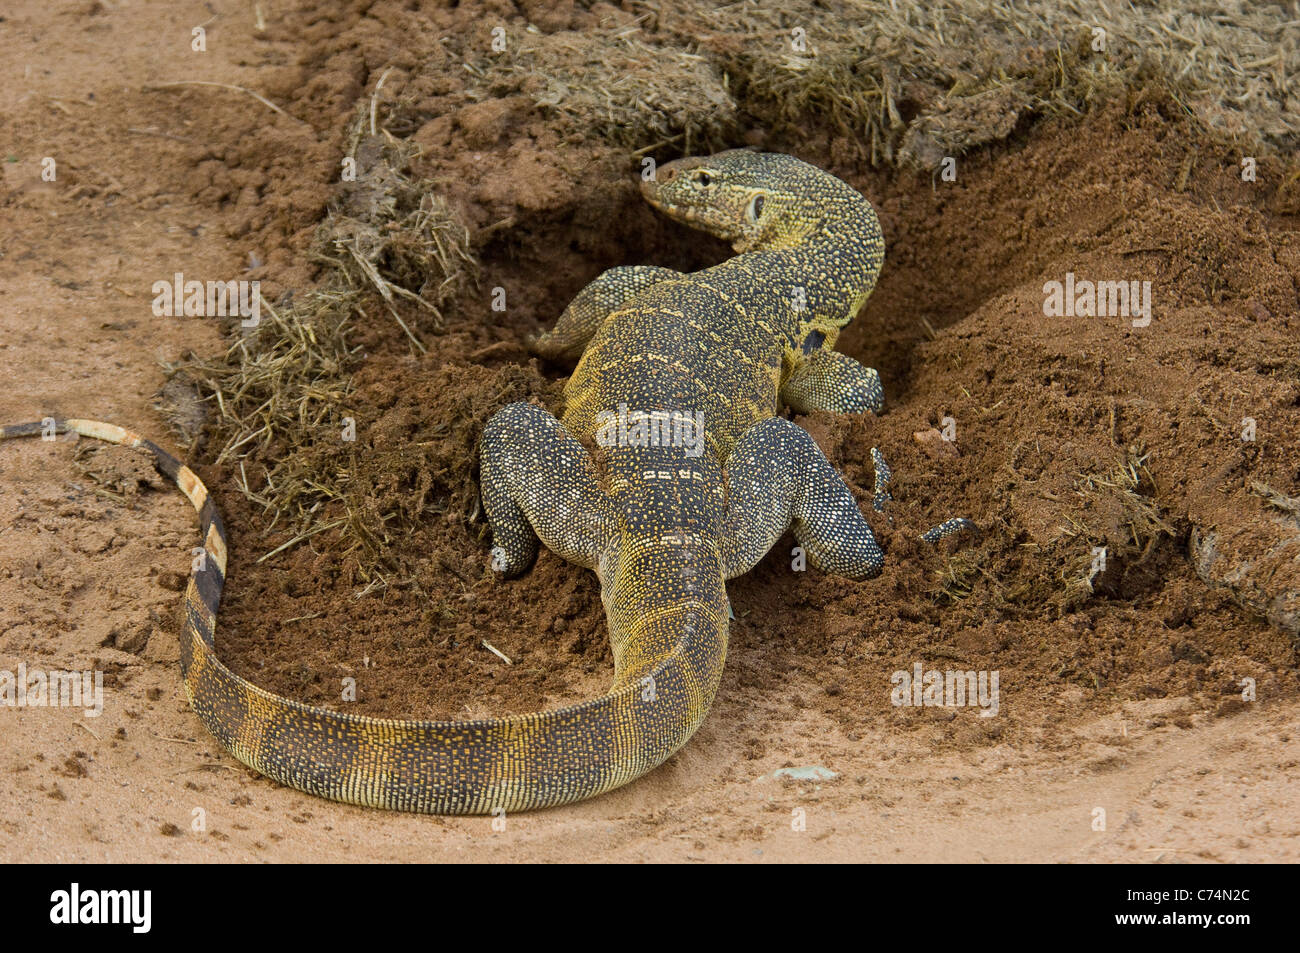 Africa, Tanzania, Lake Manyara-Nile Monitor lizard by hole it dug for dung beetles - Stock Image